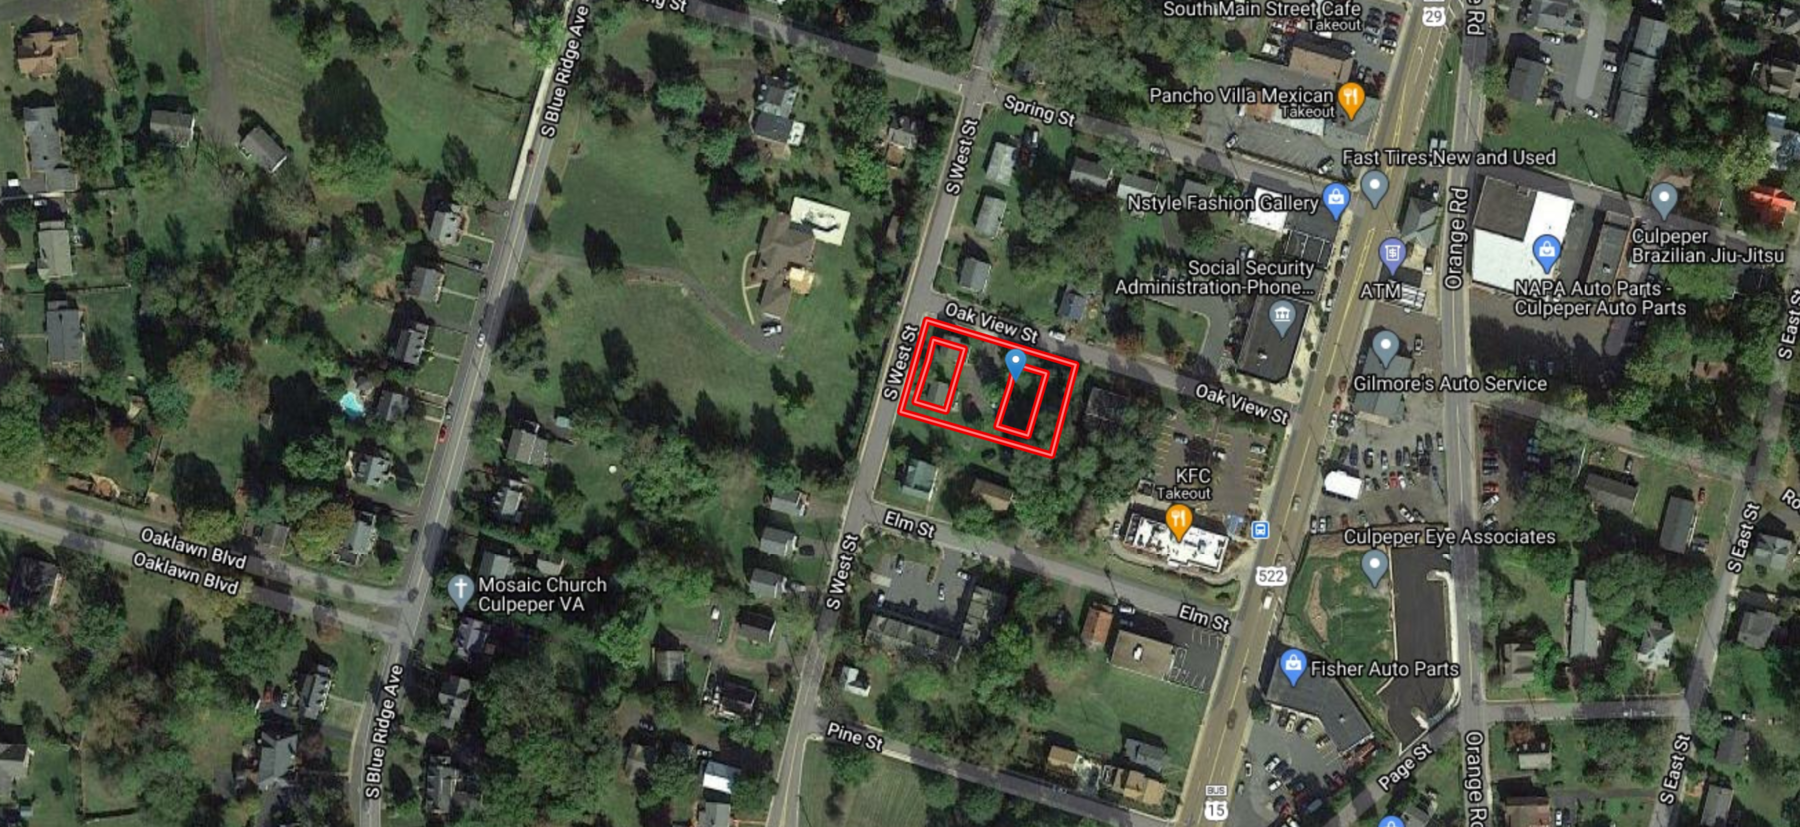 Image for Multi Family Real Estate Investment Opportunity Located Only Steps From Main St.--Culpeper, VA